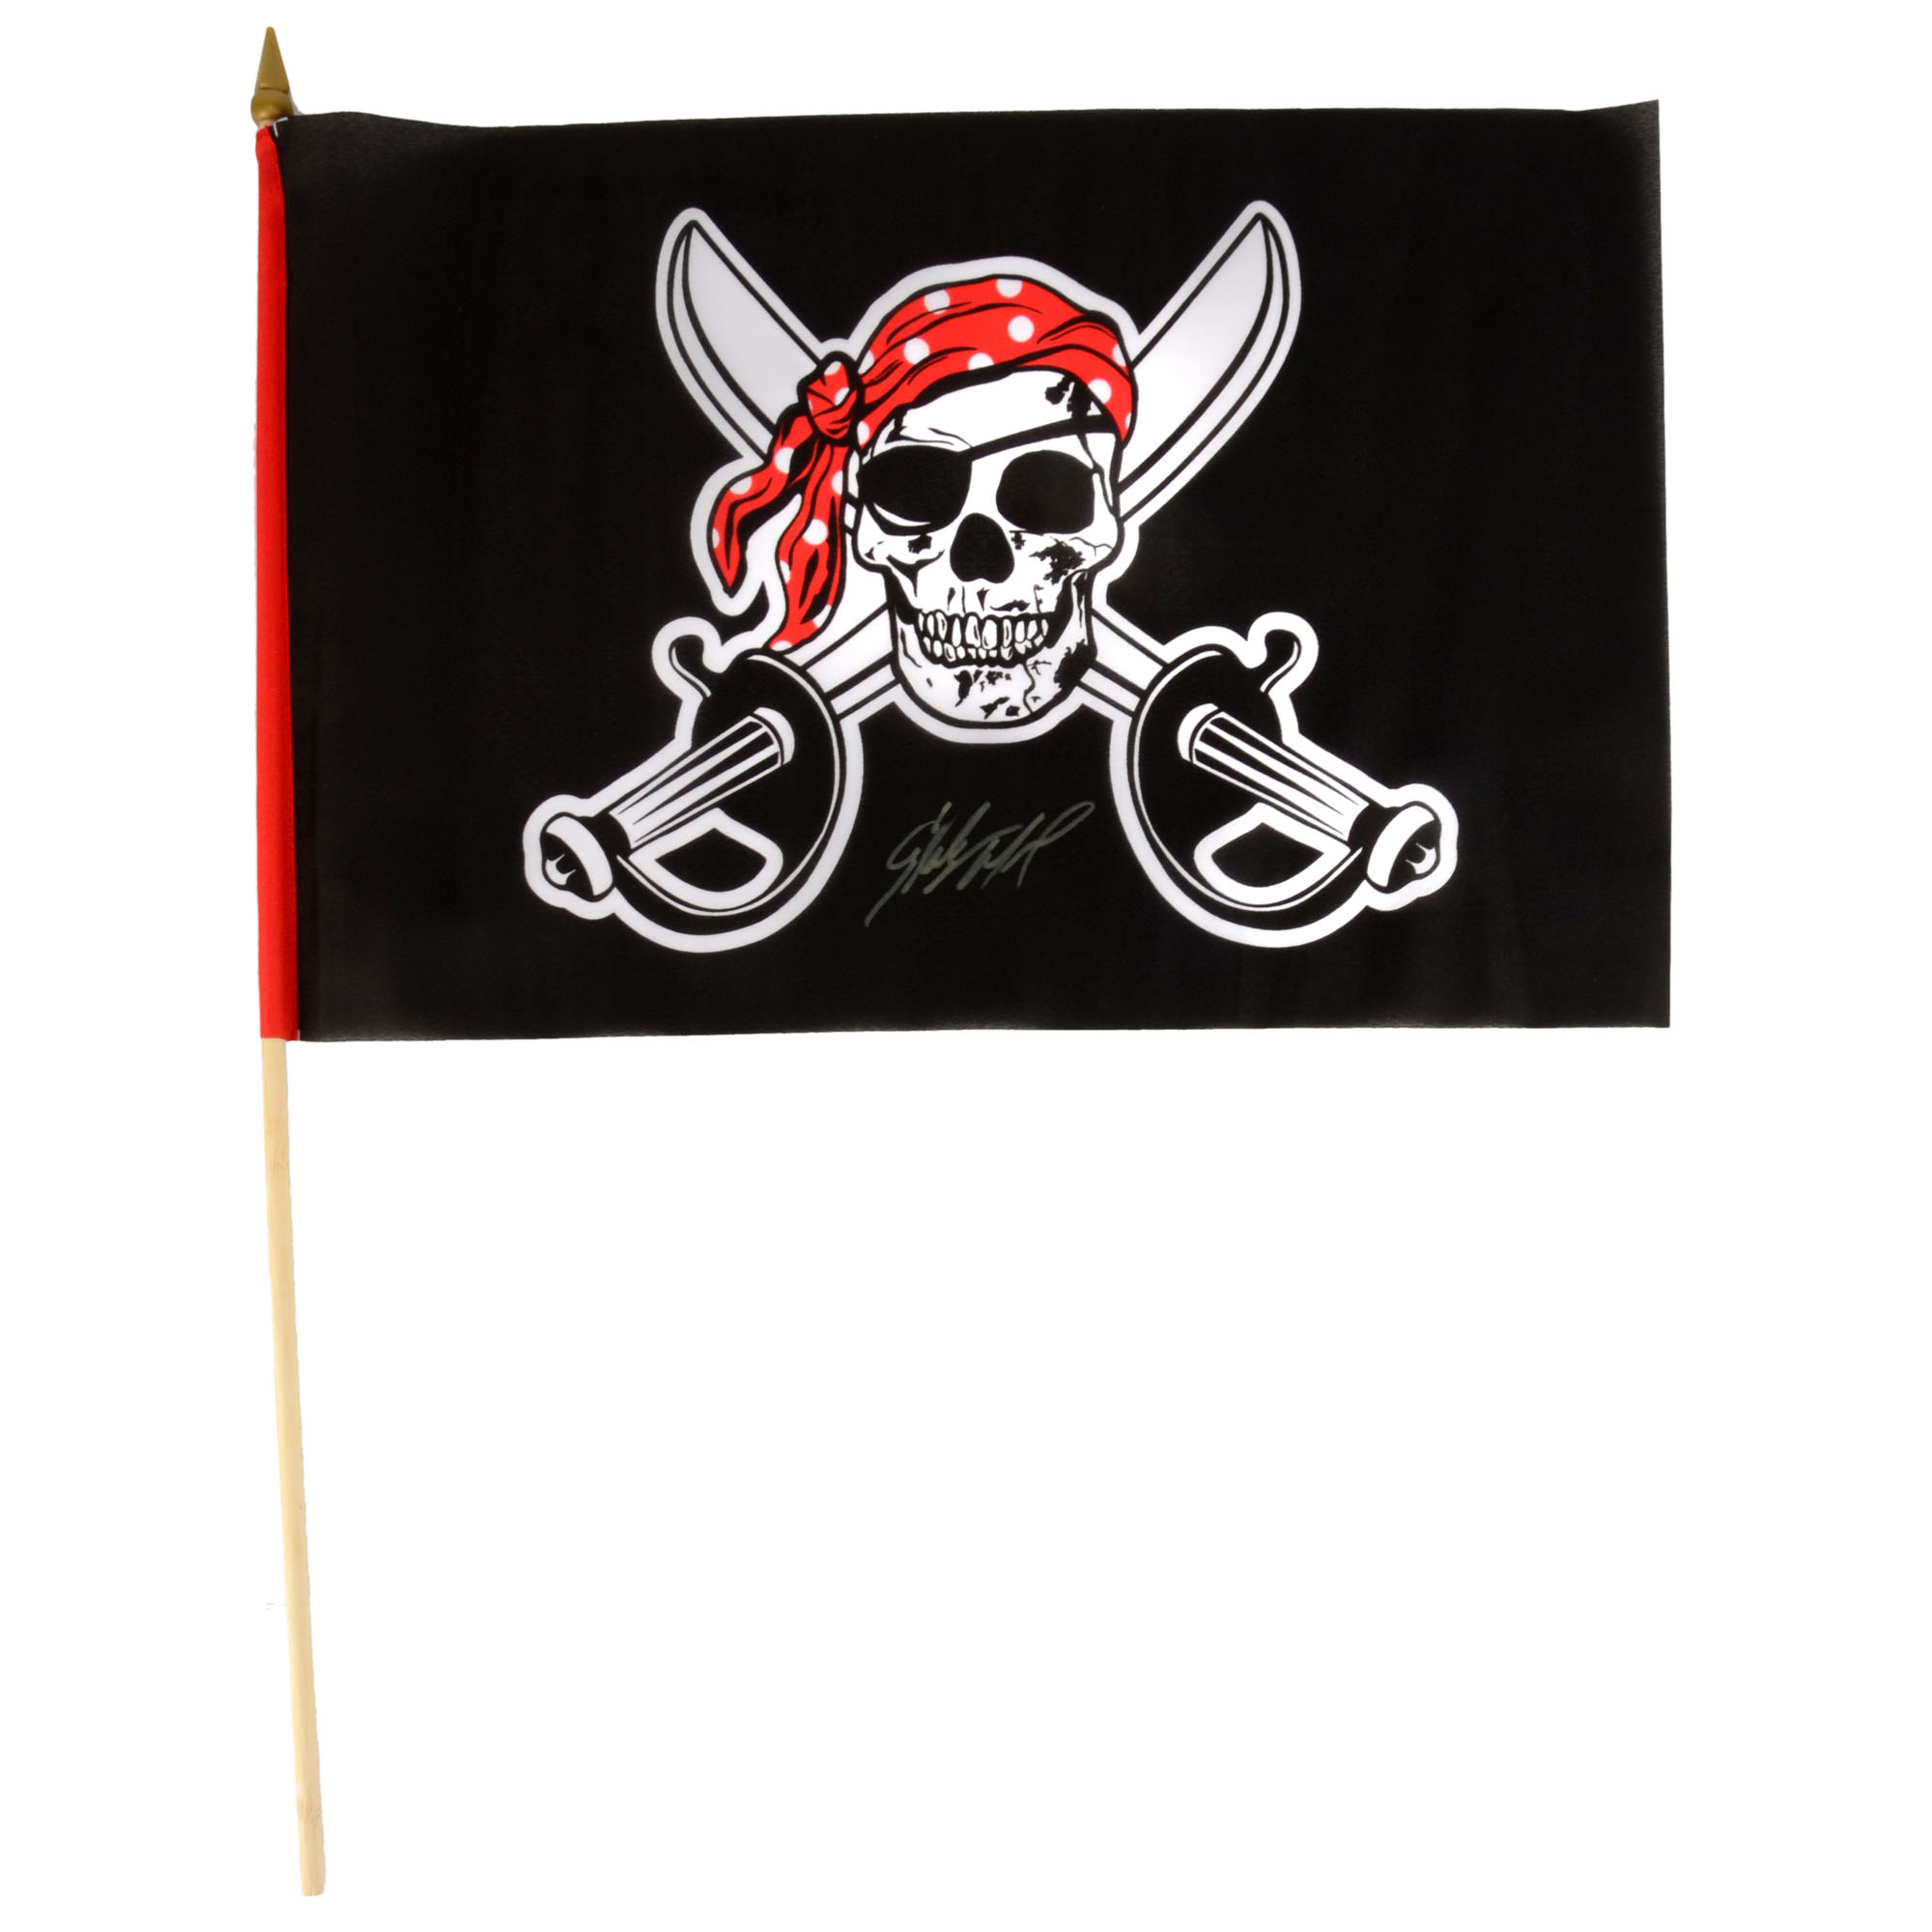 Starling Marte Pittsburgh Pirates Fanatics Authentic Autographed Jolly Roger Flag - No Size